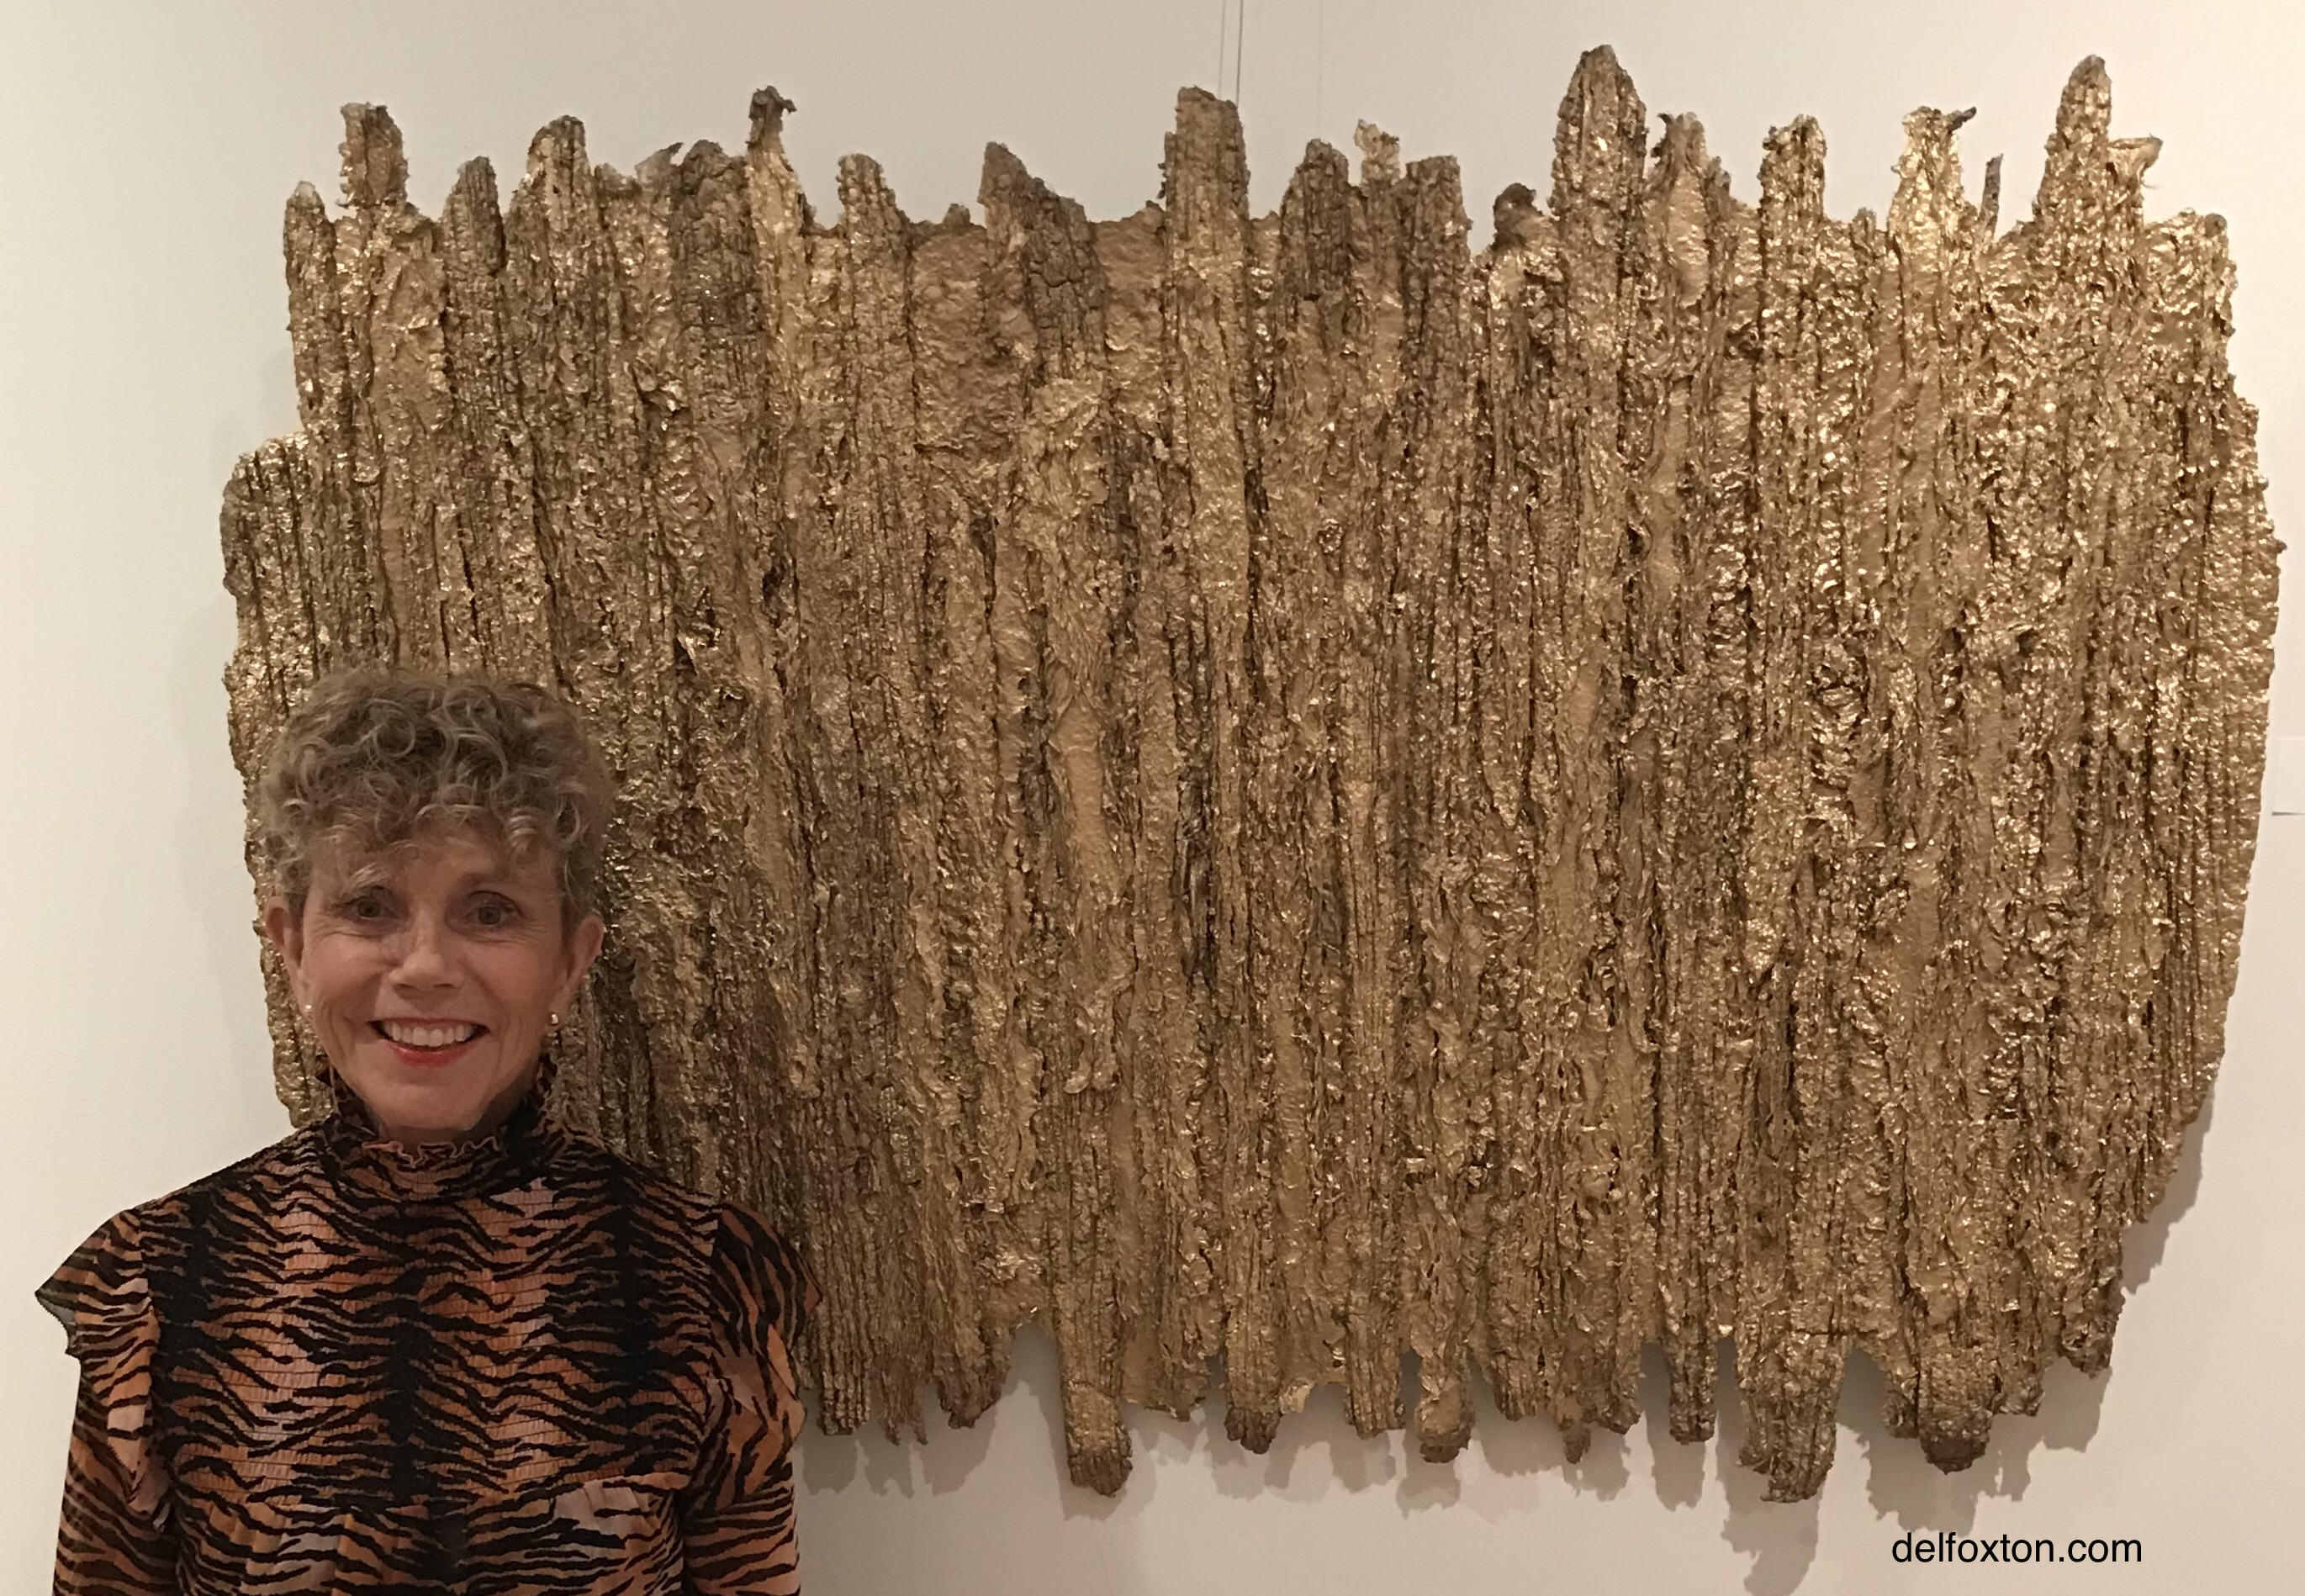 Del Foxton standing next to large piece